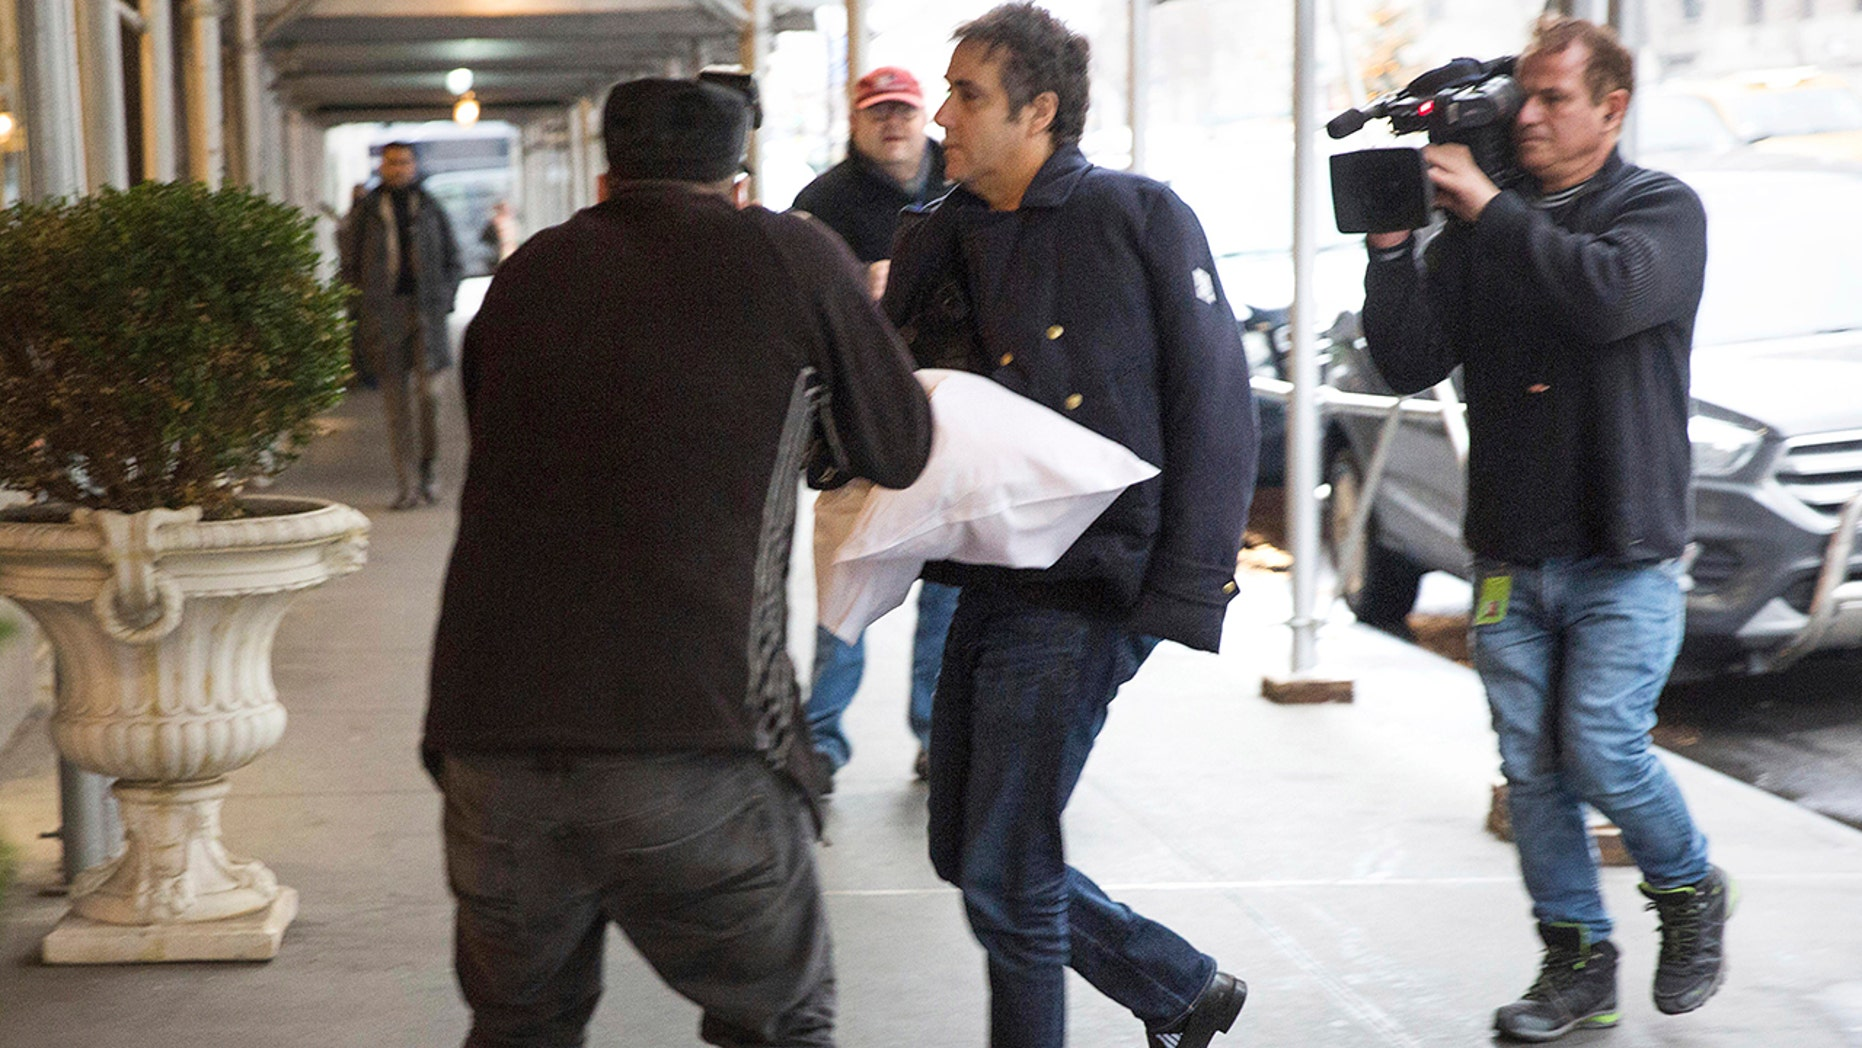 Michael Cohen arrives at his home in New York City with one of hisarms in a sling supported by a pillow Friday, Jan. 18, 2019. (Associated Press)